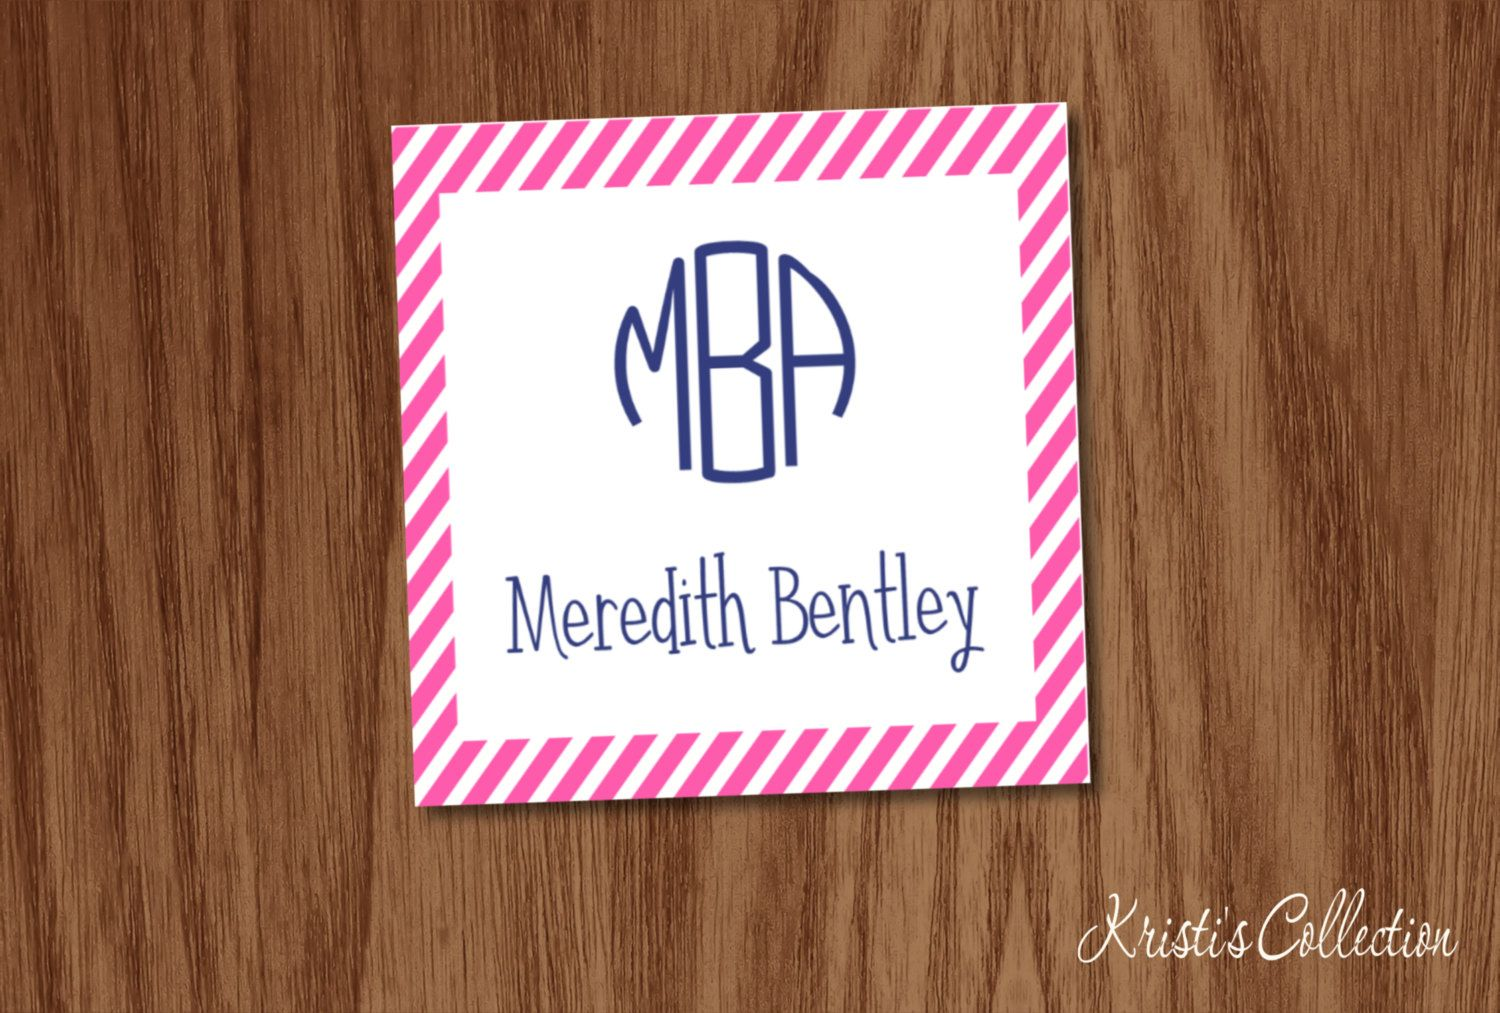 Monogrammed striped calling cards stickers personalized personal monogrammed striped calling cards stickers personalized personal business cards gift inserts tags enclosure cards girls gift tags colourmoves